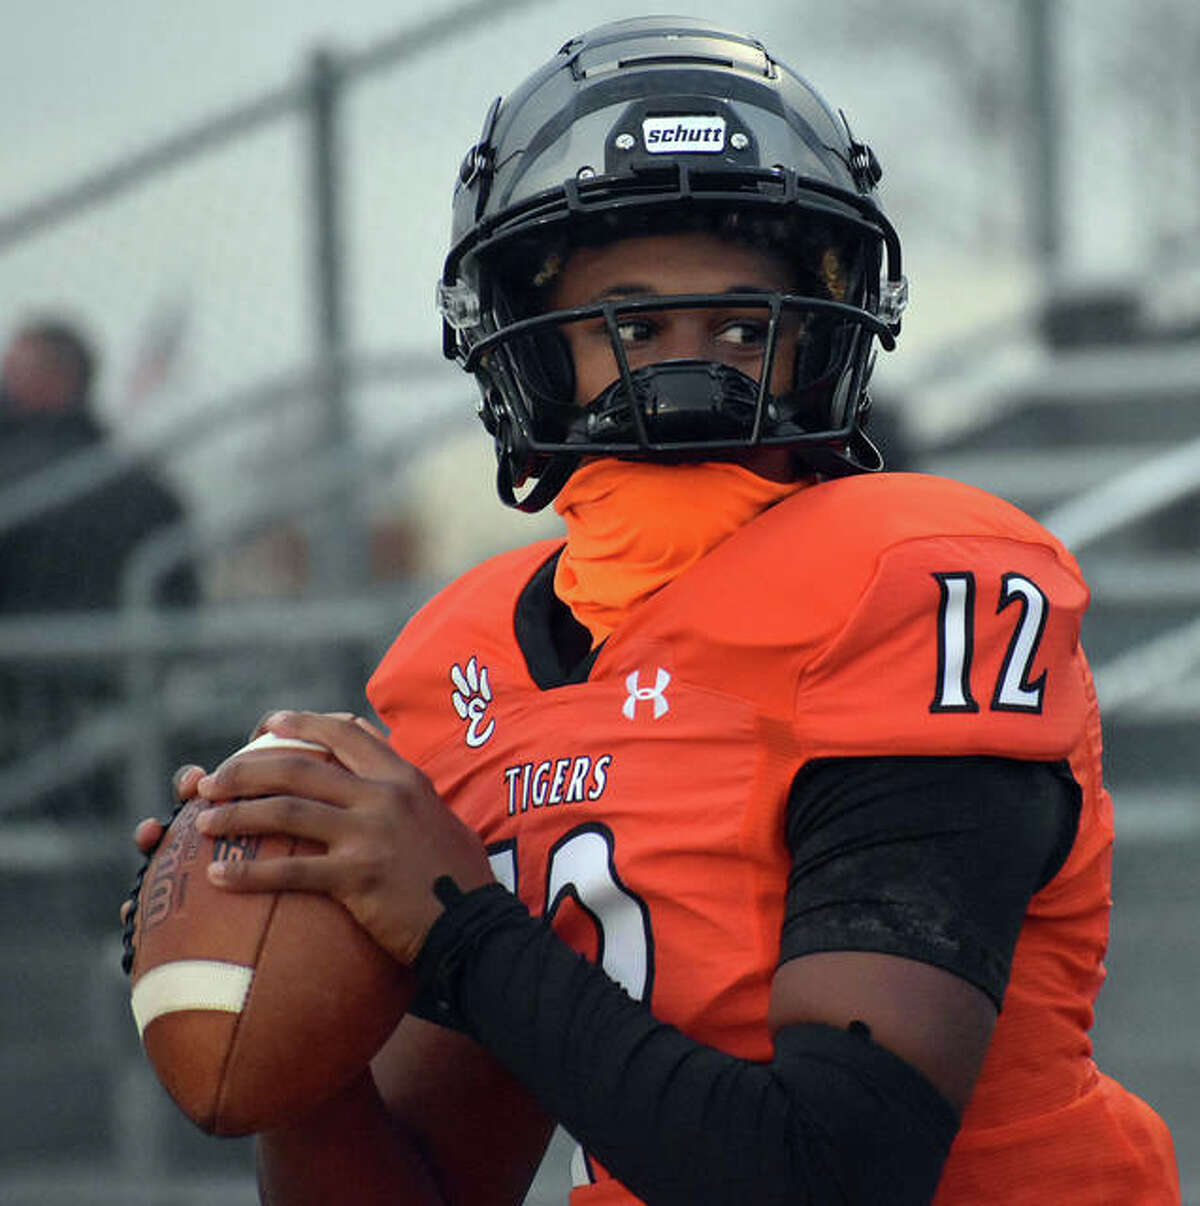 Edwardsville quarterback James Distaso-Hutchins warms up on the sideline prior to the start of a Week 2 game against Belleville East.